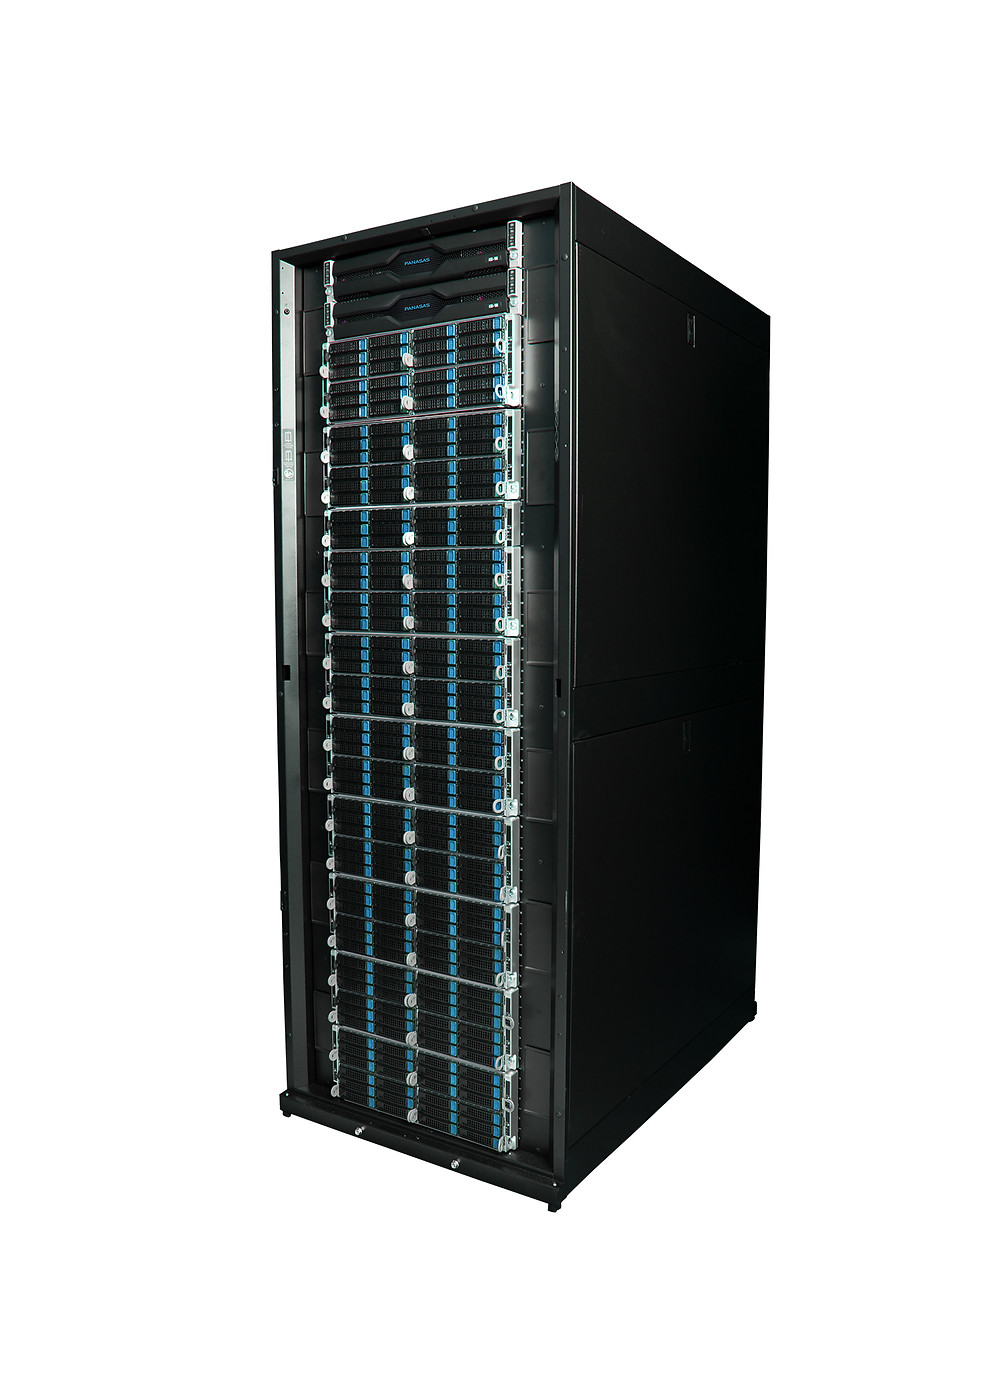 Exxact partners with Panasas to deliver Turnkey HPC Storage Clusters featuring Activestor Ultra with PanFS